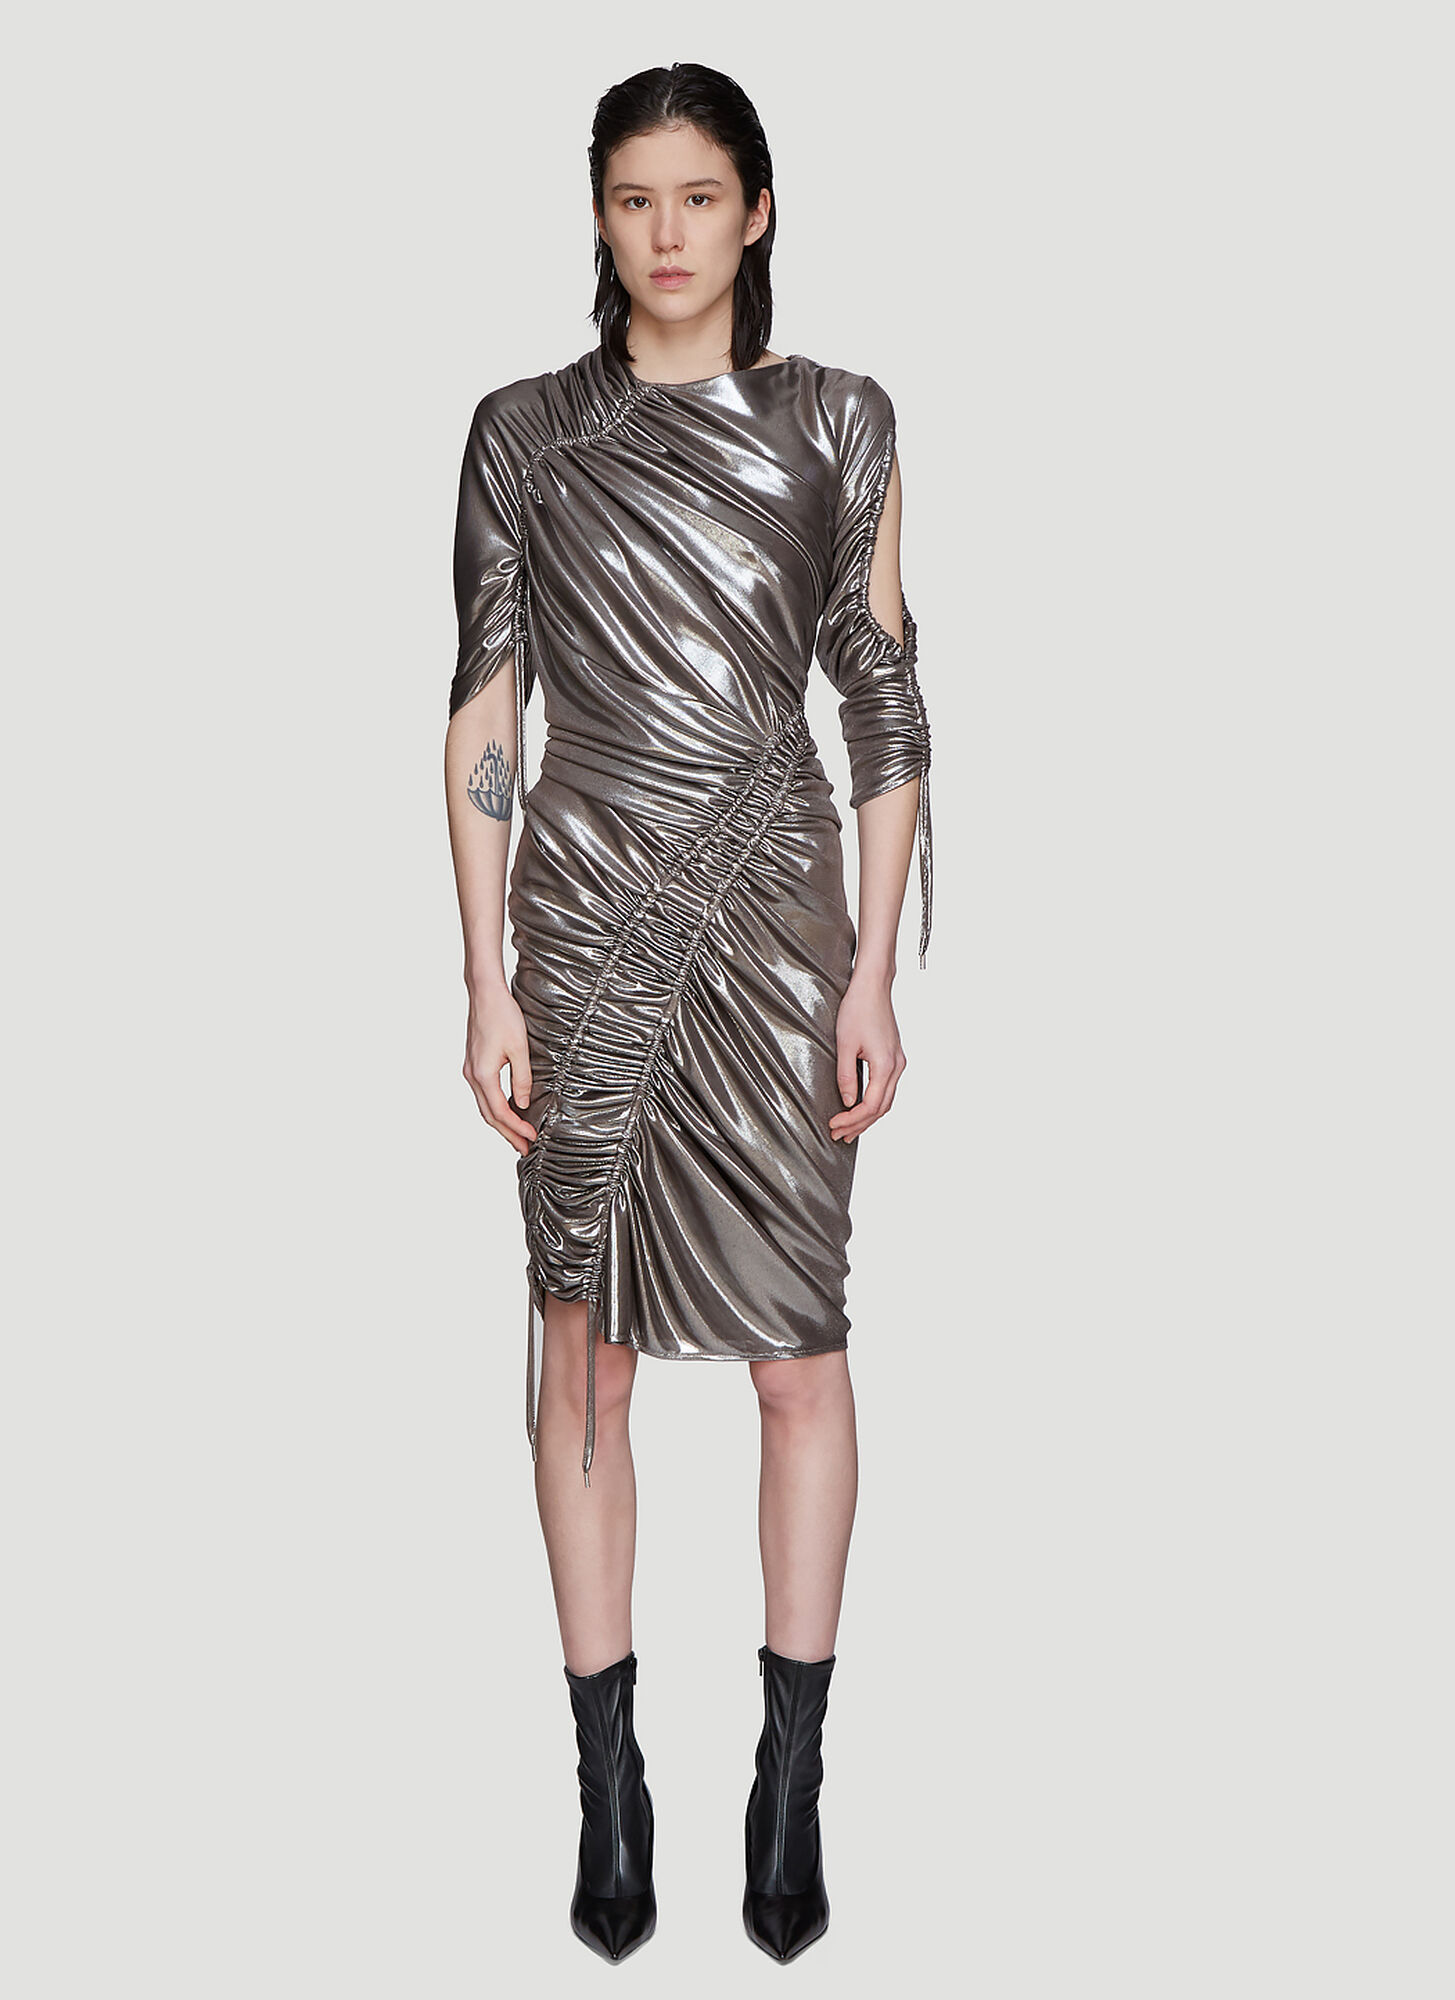 Atlein Mercury Ruched Dress in Silver